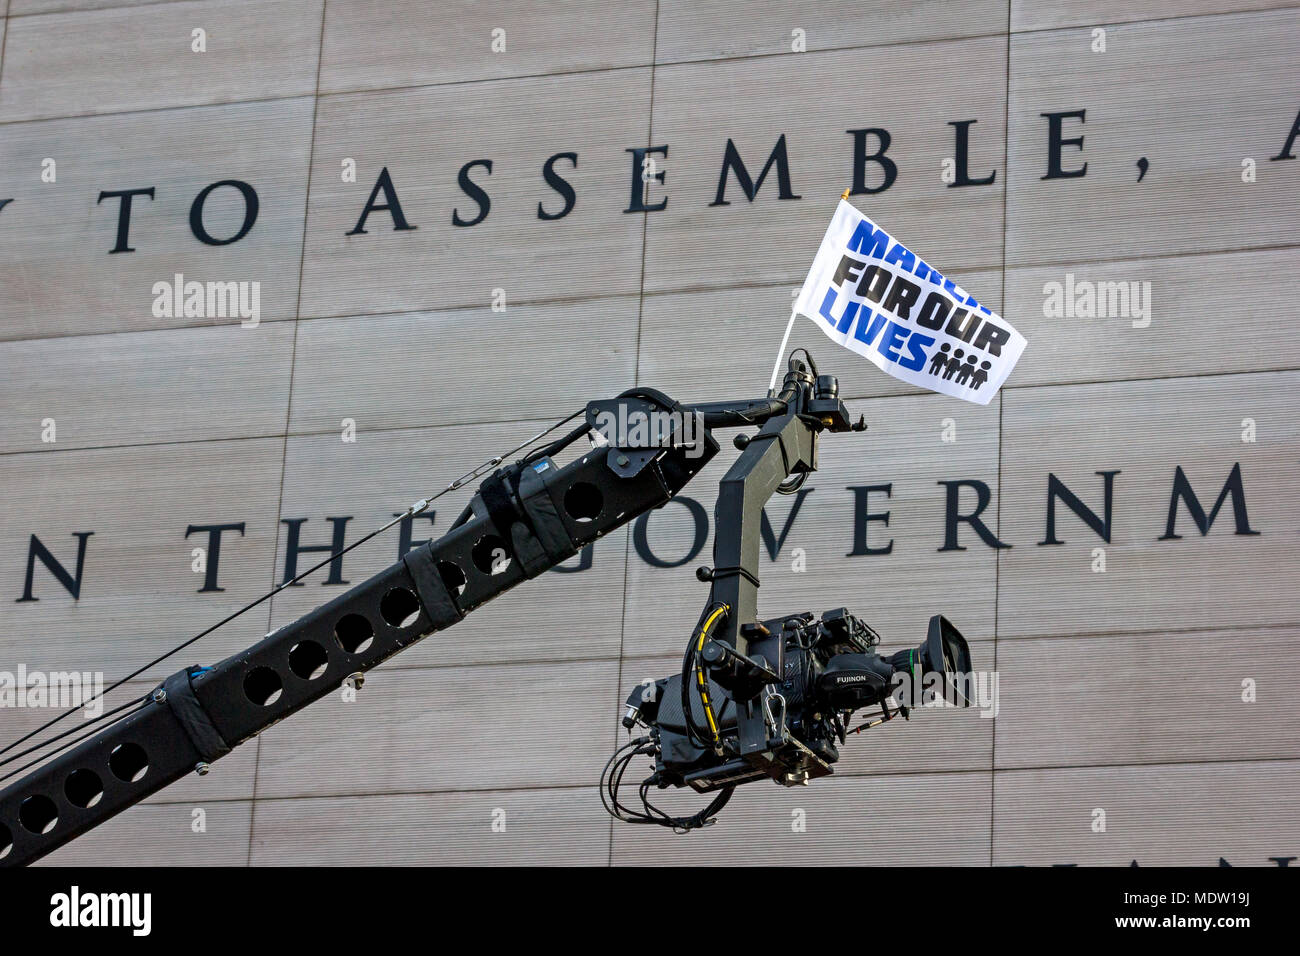 TV camera outside the Newseum displaying the text of the First Amendment to the U.S. Constitution. March For Our Lives rally against gun violence on March 24, 2018 in Washington, DC. - Stock Image